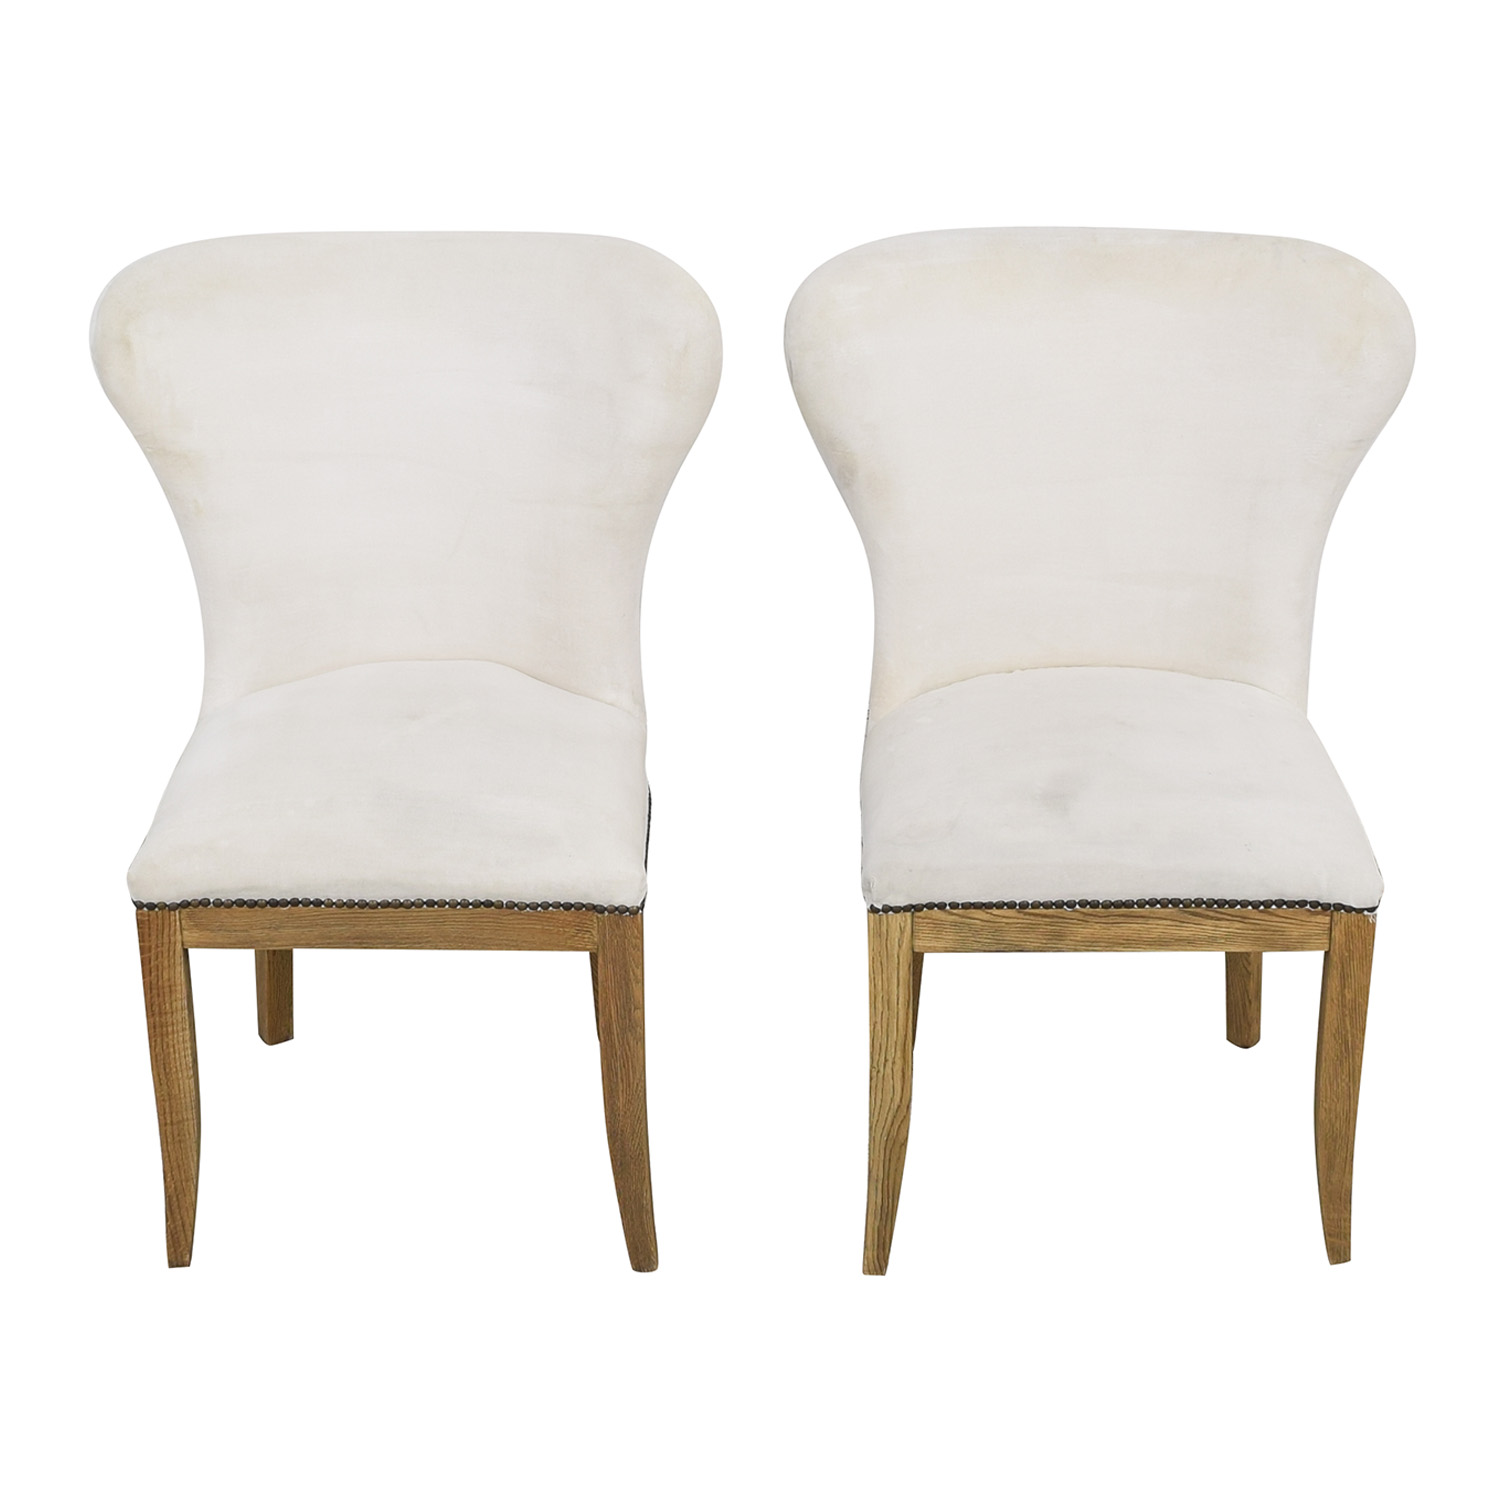 Restoration Hardware Upholstered Dining Chairs sale